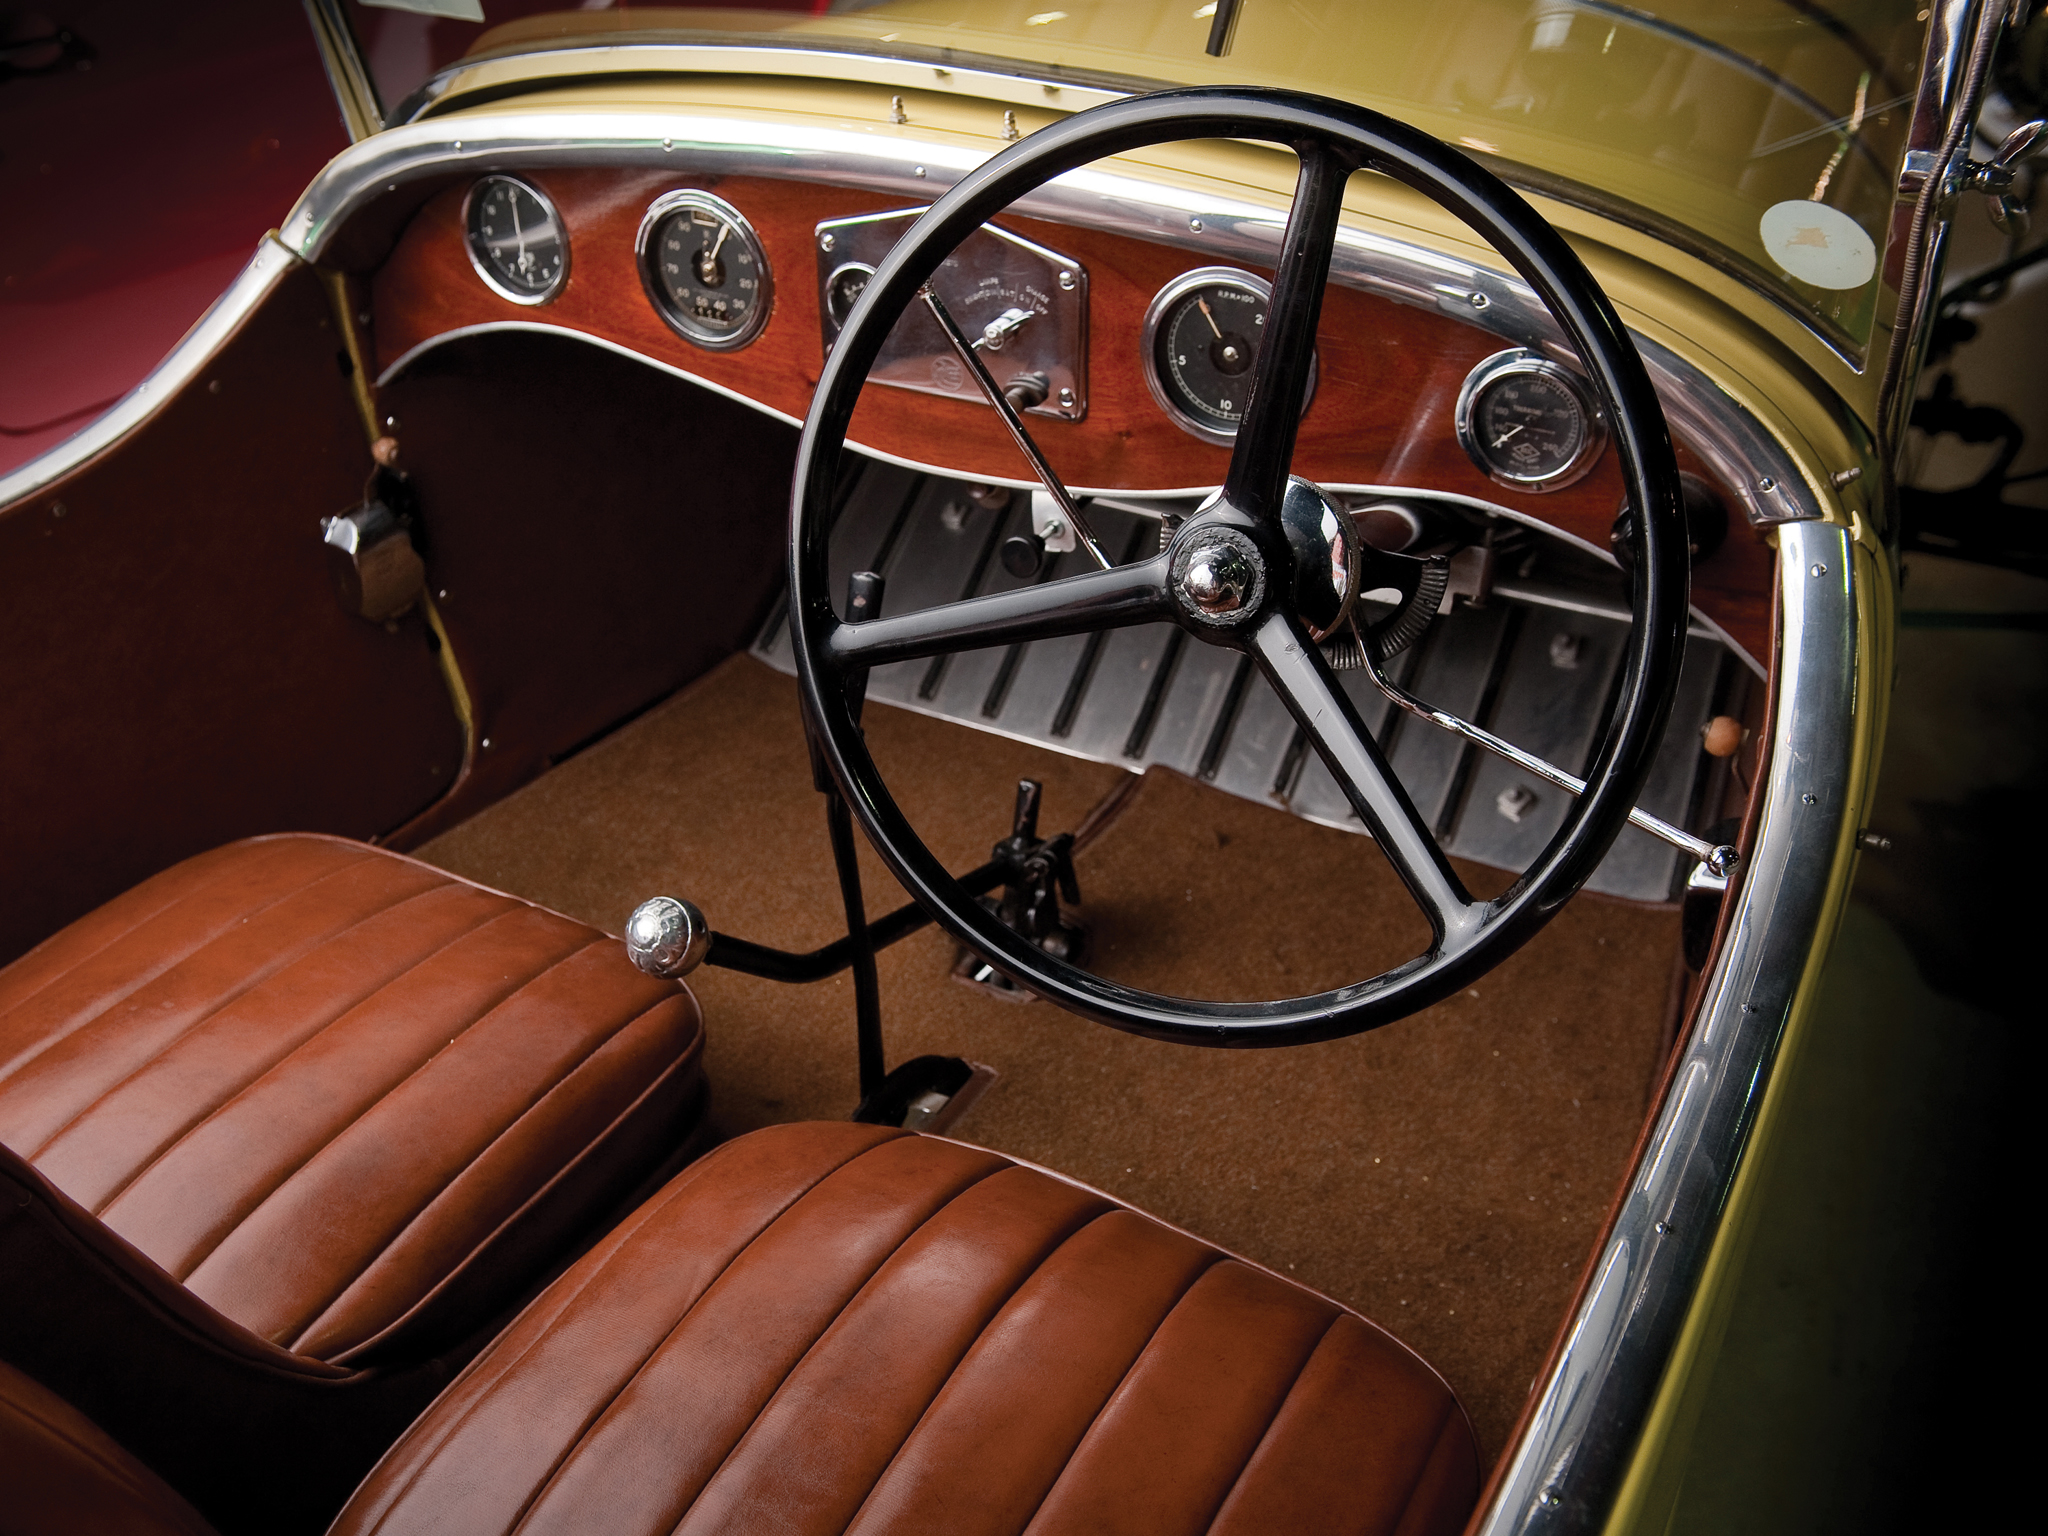 1929 ford model t frontenac speedster retro interior g wallpaper 2048x1536 142179 wallpaperup. Black Bedroom Furniture Sets. Home Design Ideas